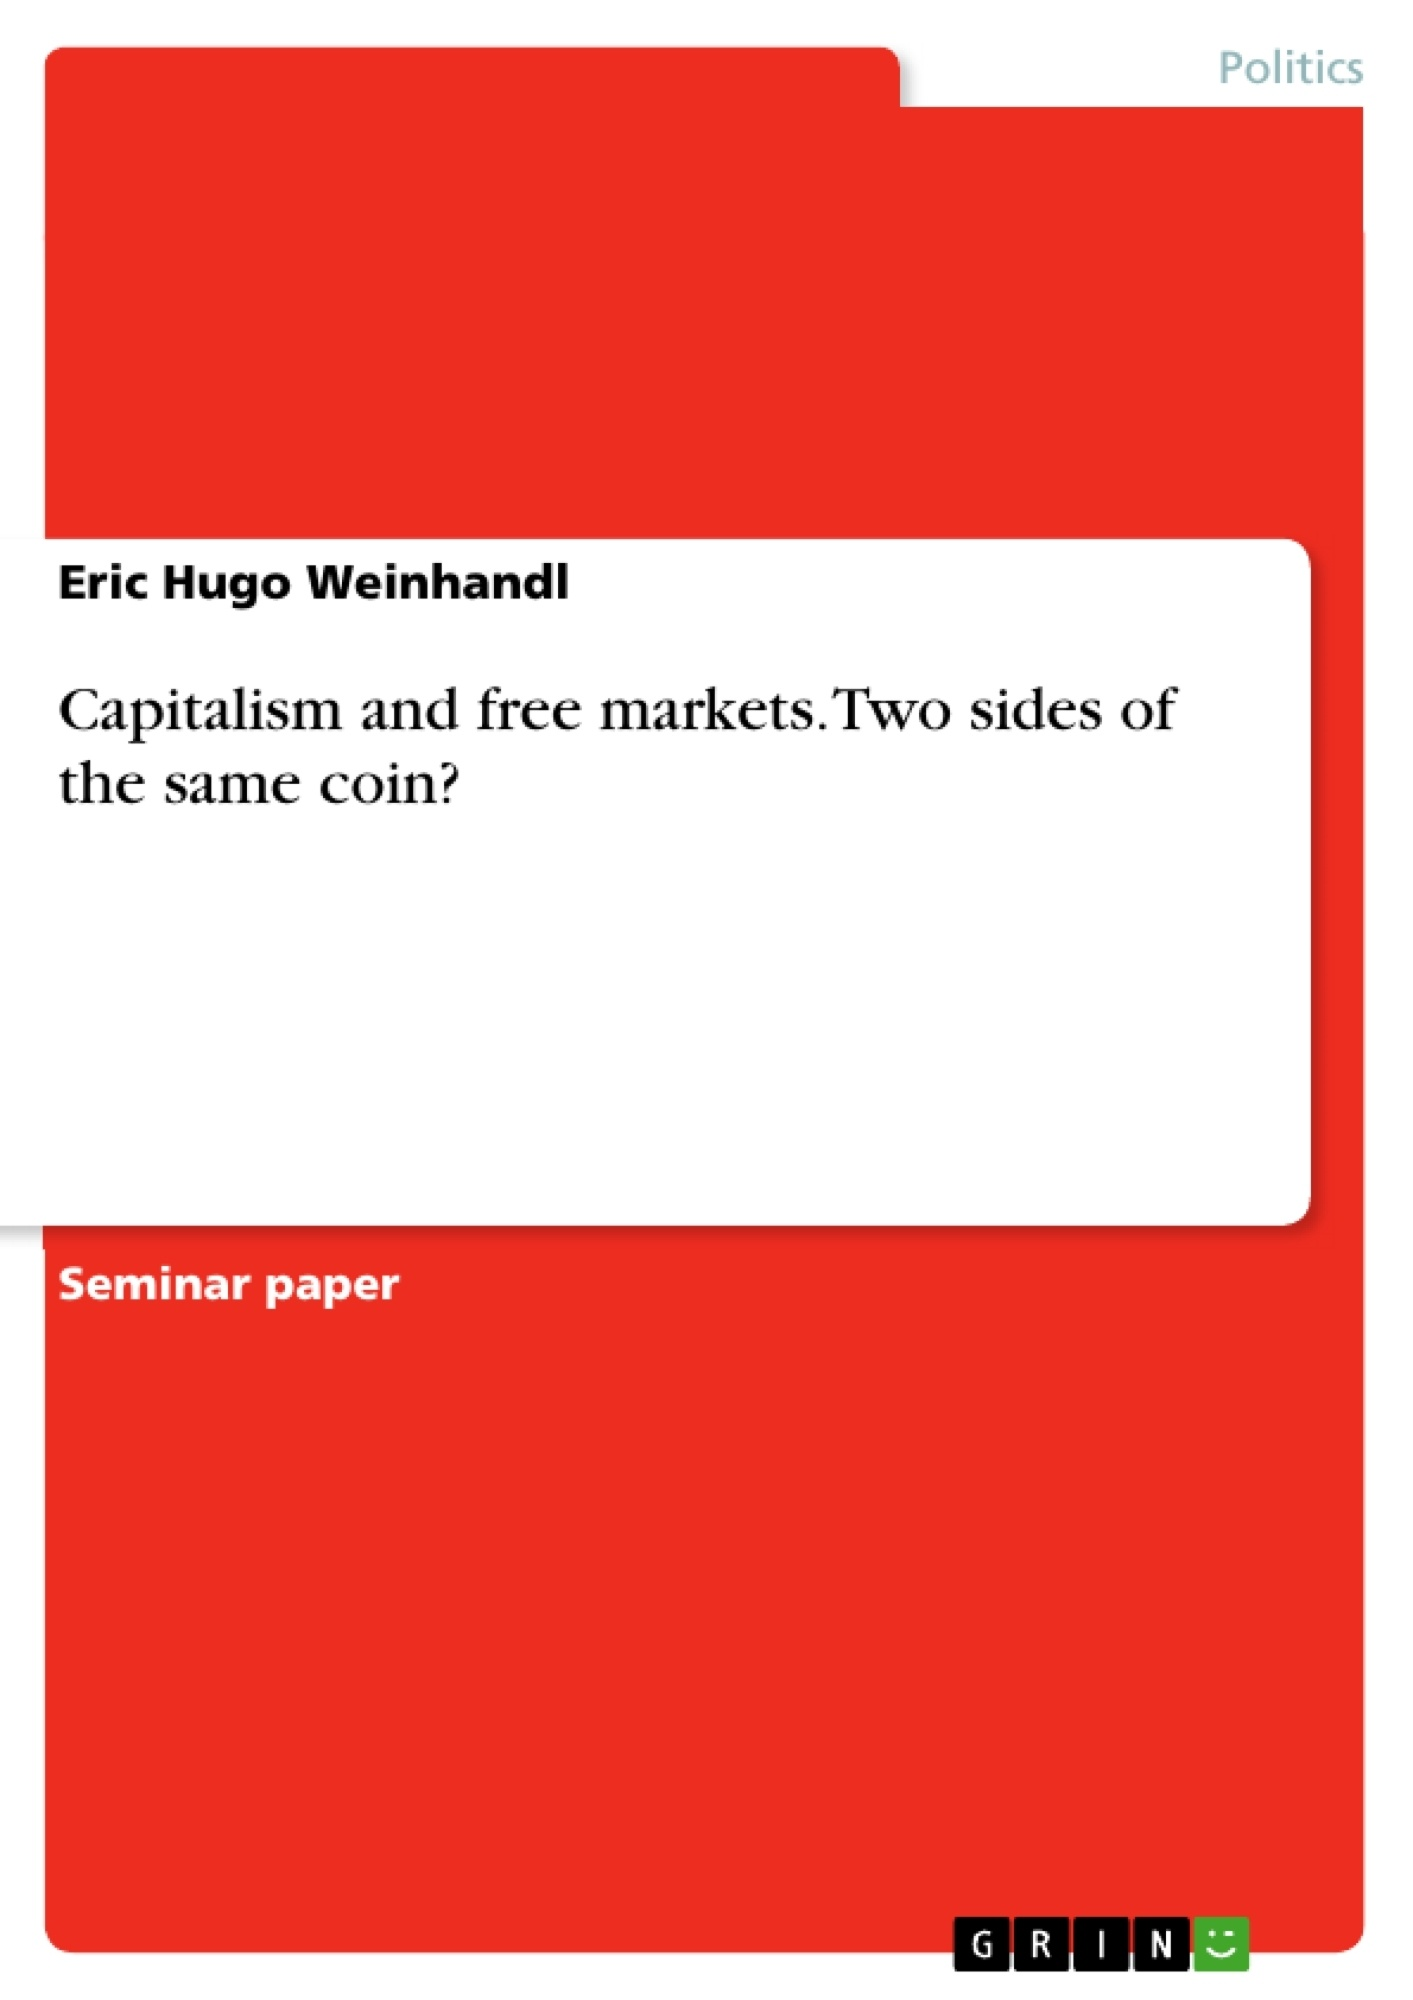 Title: Capitalism and free markets. Two sides of the same coin?